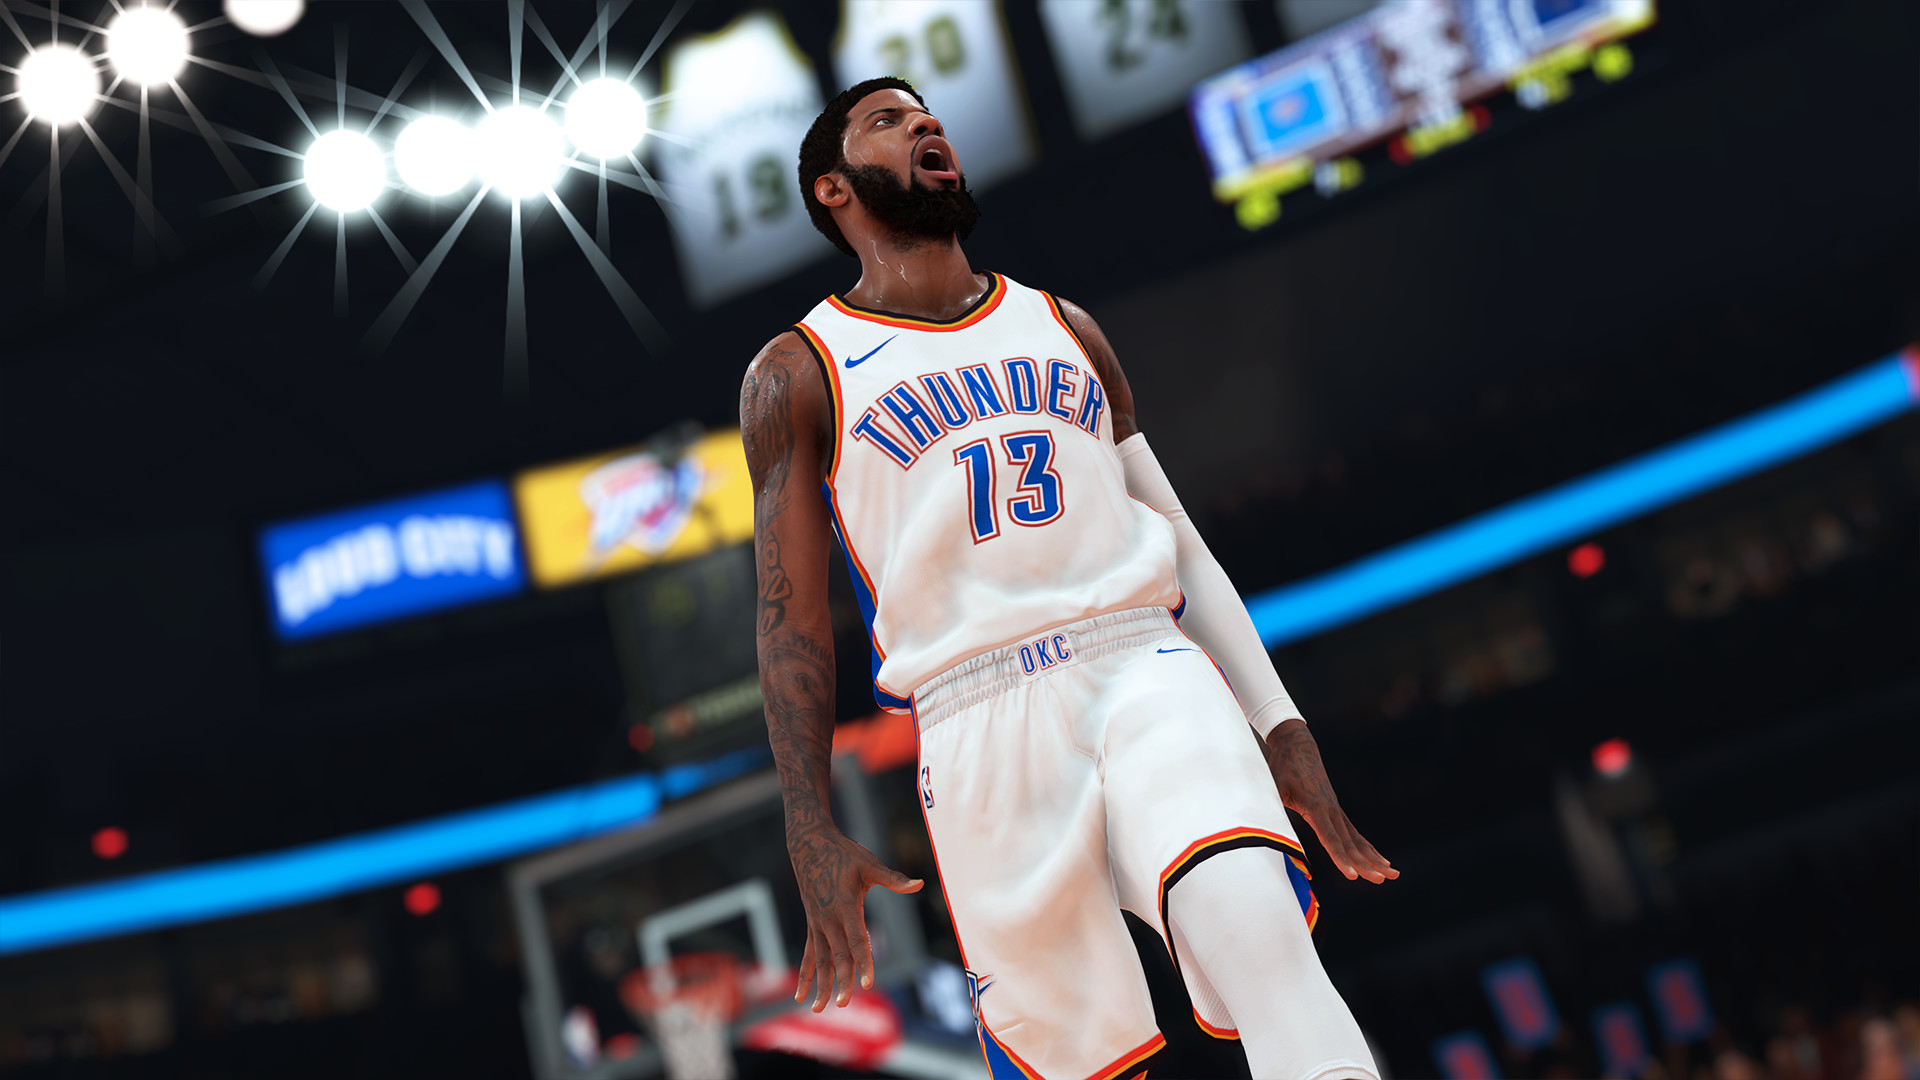 2K says microtransactions are